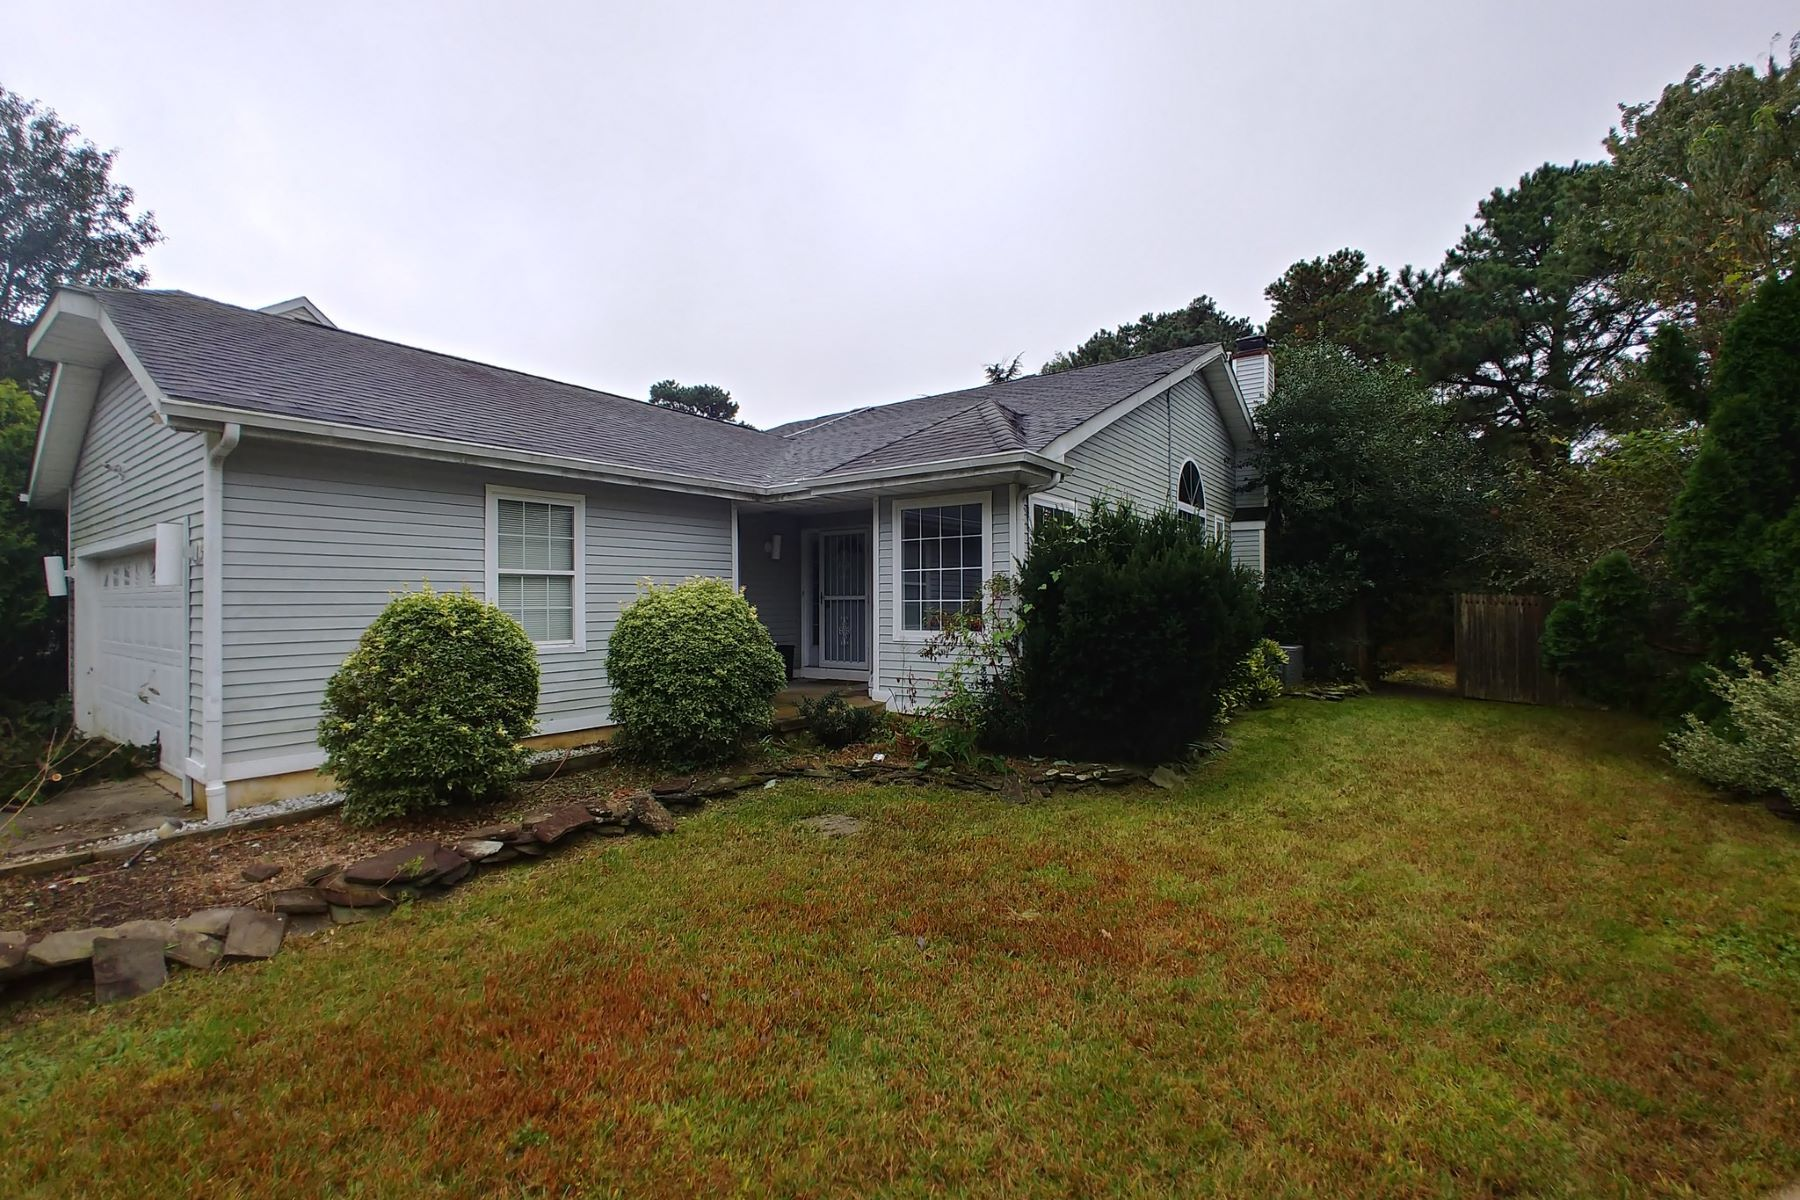 Single Family Home for Sale at 141 Bonita Drive Egg Harbor Township, New Jersey 08234 United States